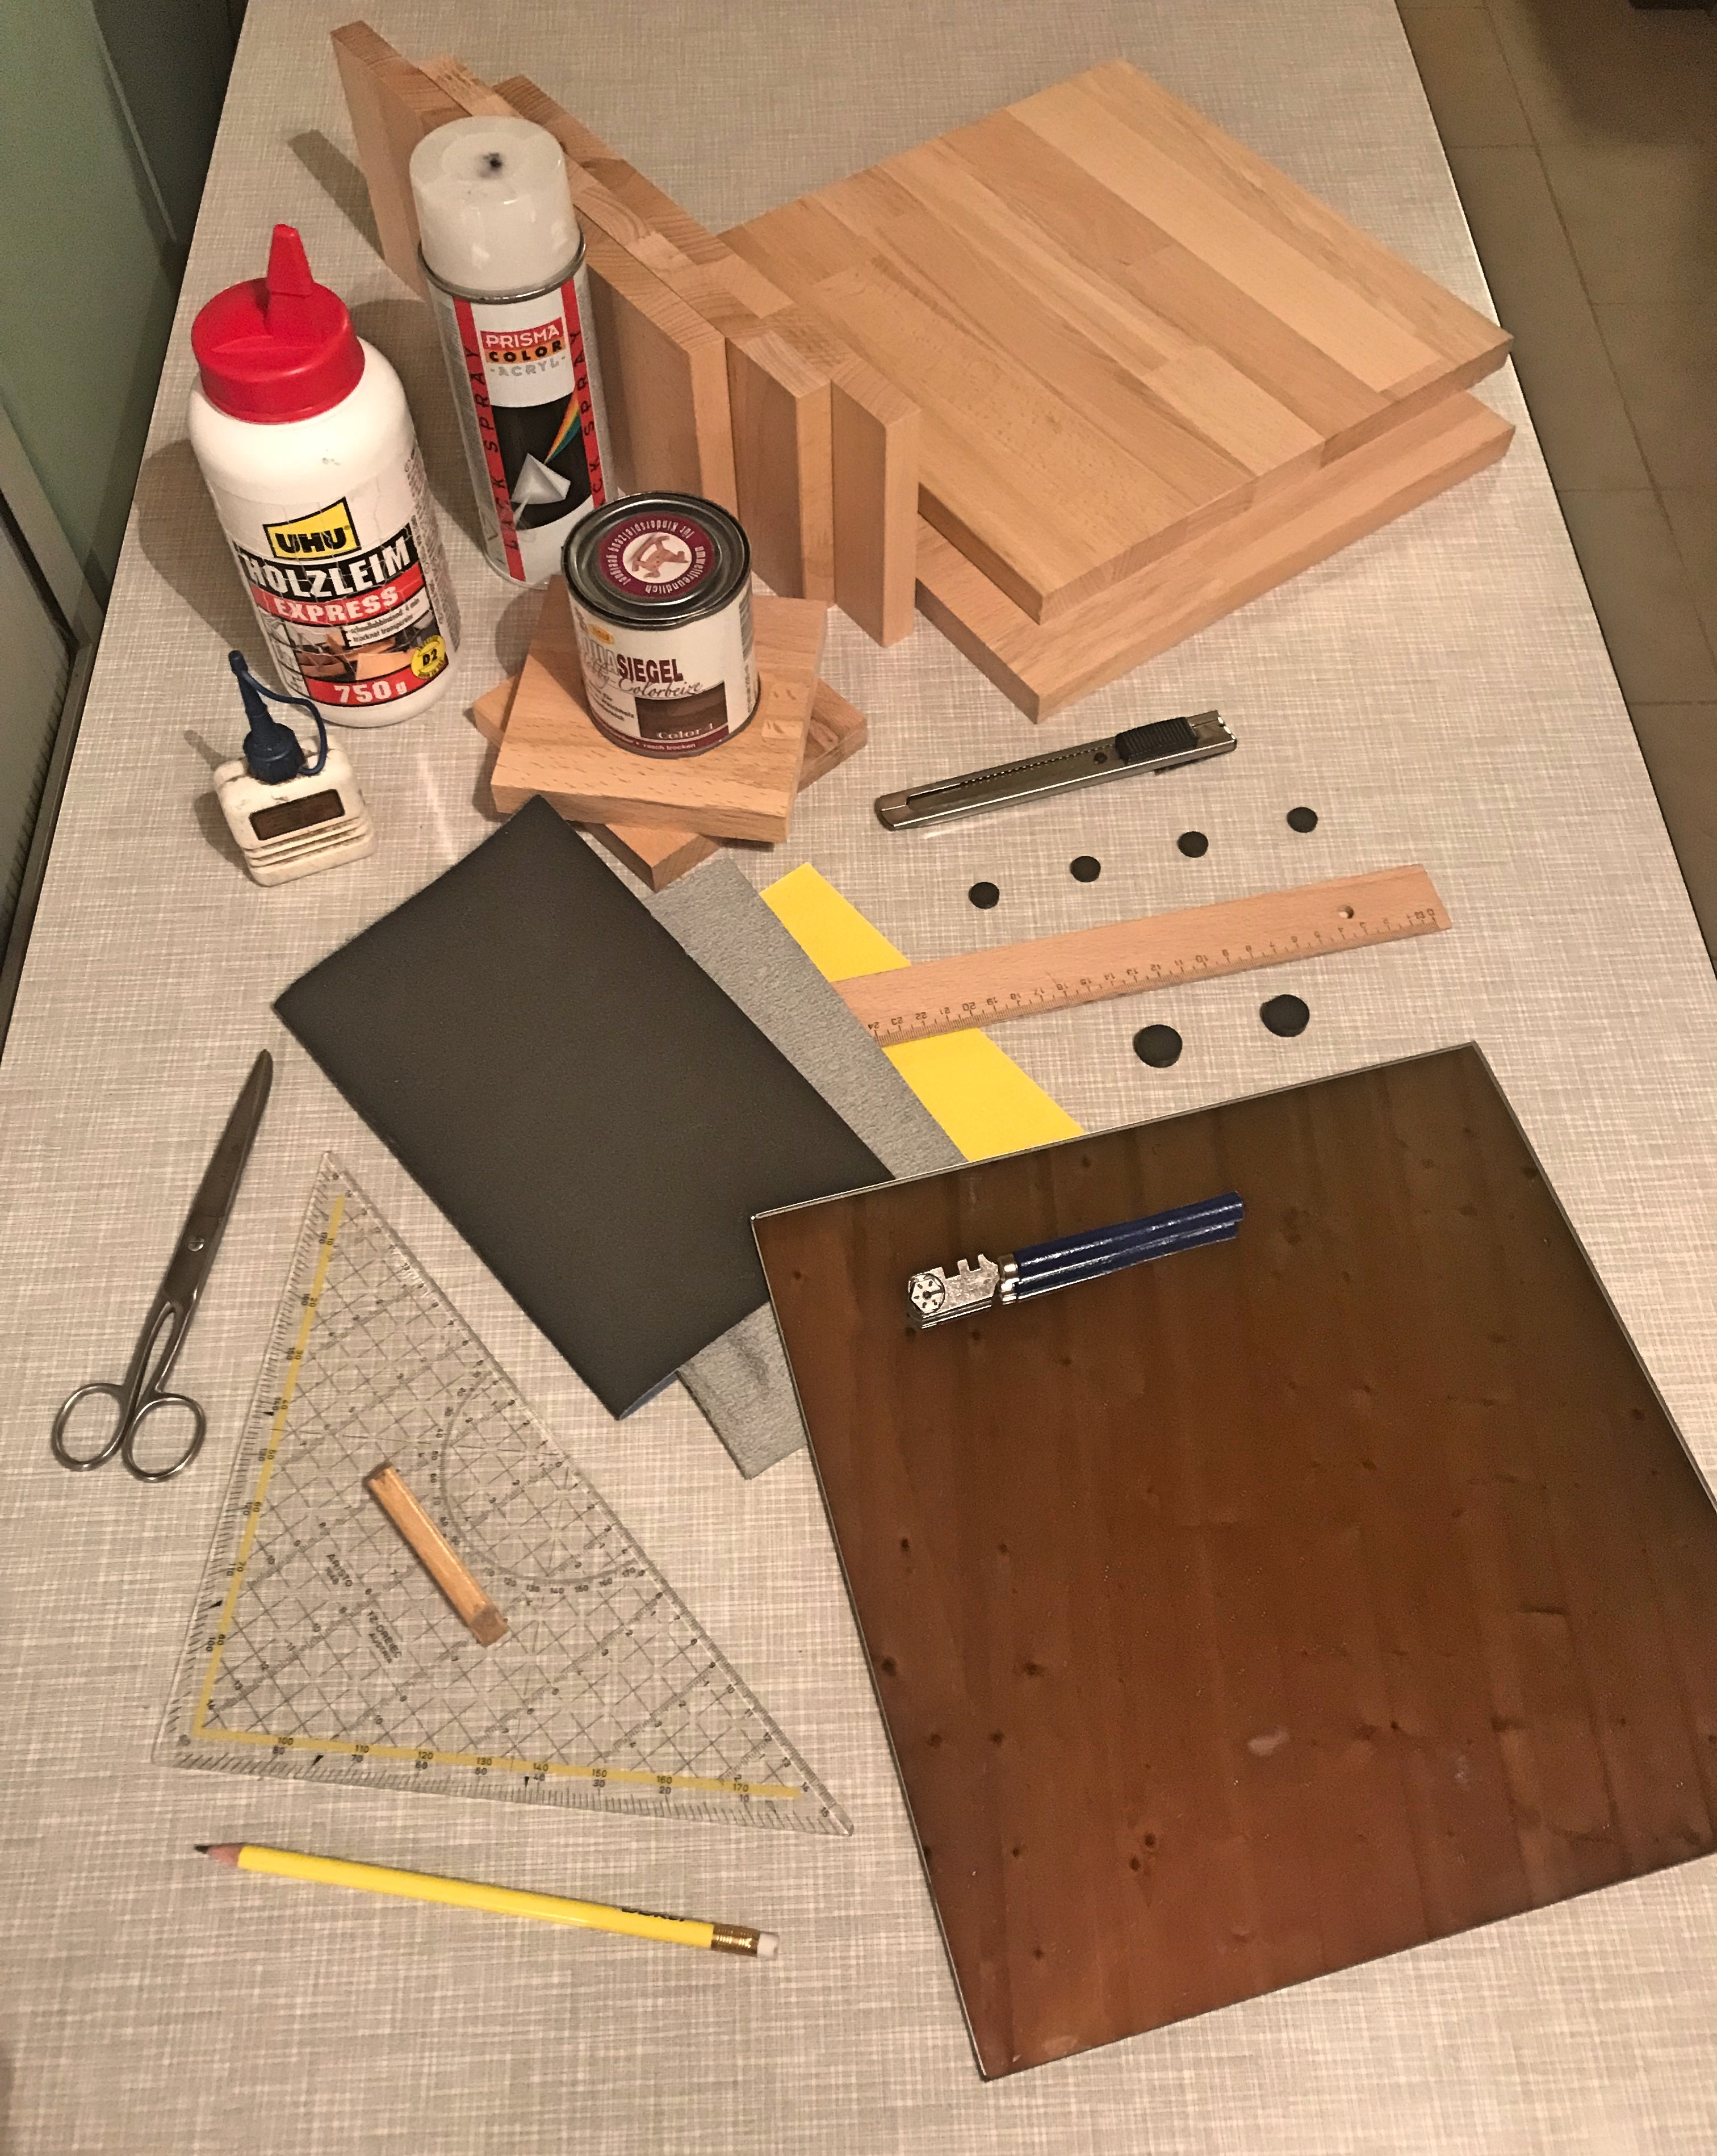 Picture of Material and Tools